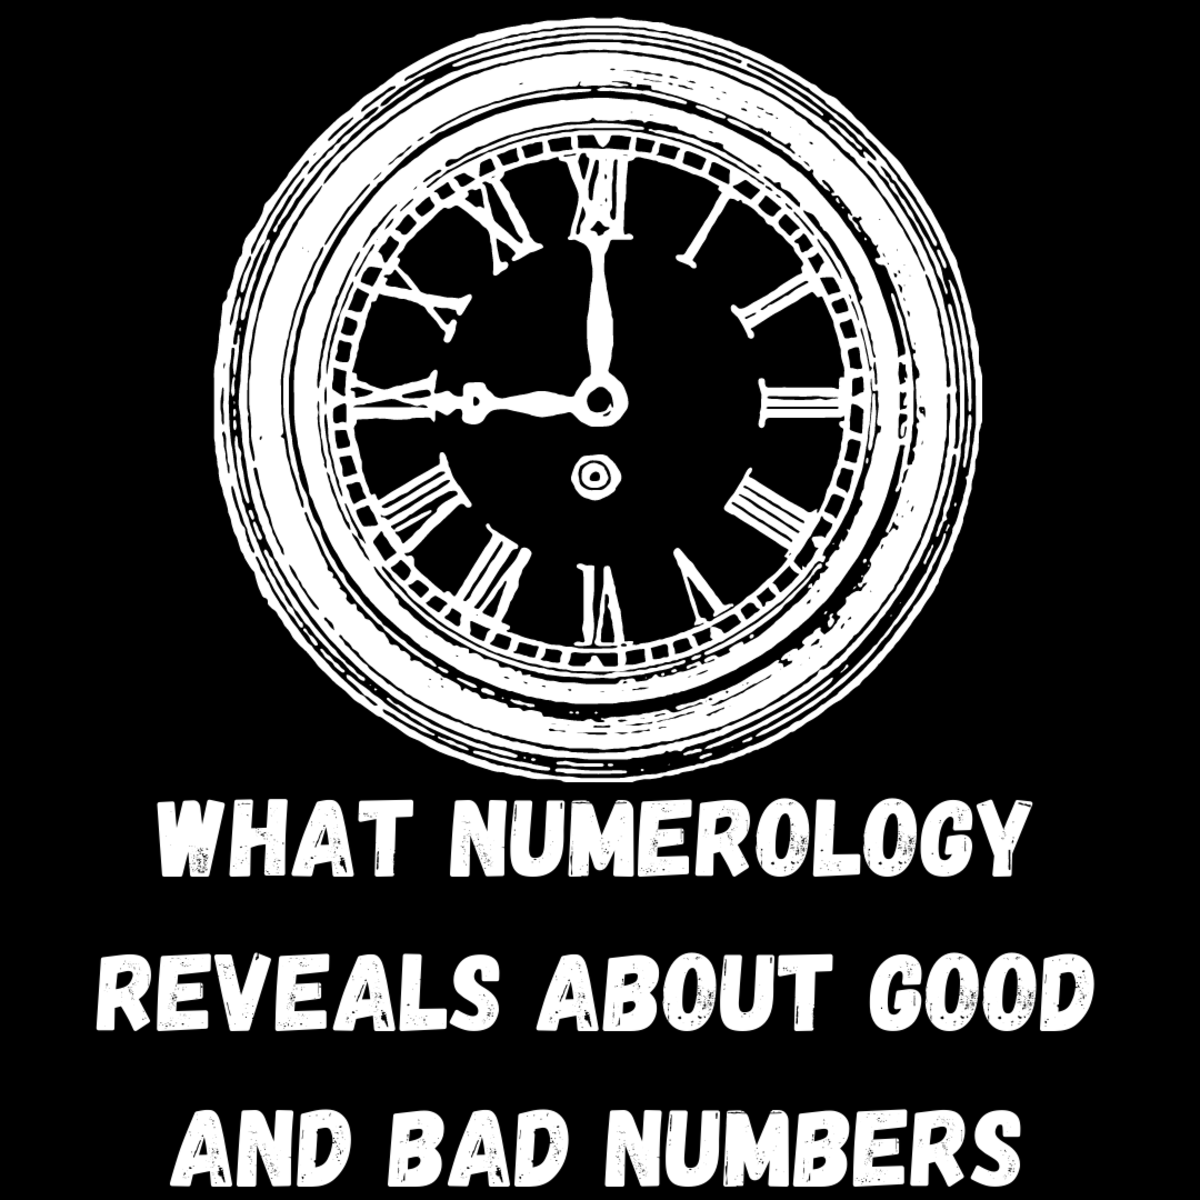 What Numerology Reveals About Good and Bad Numbers